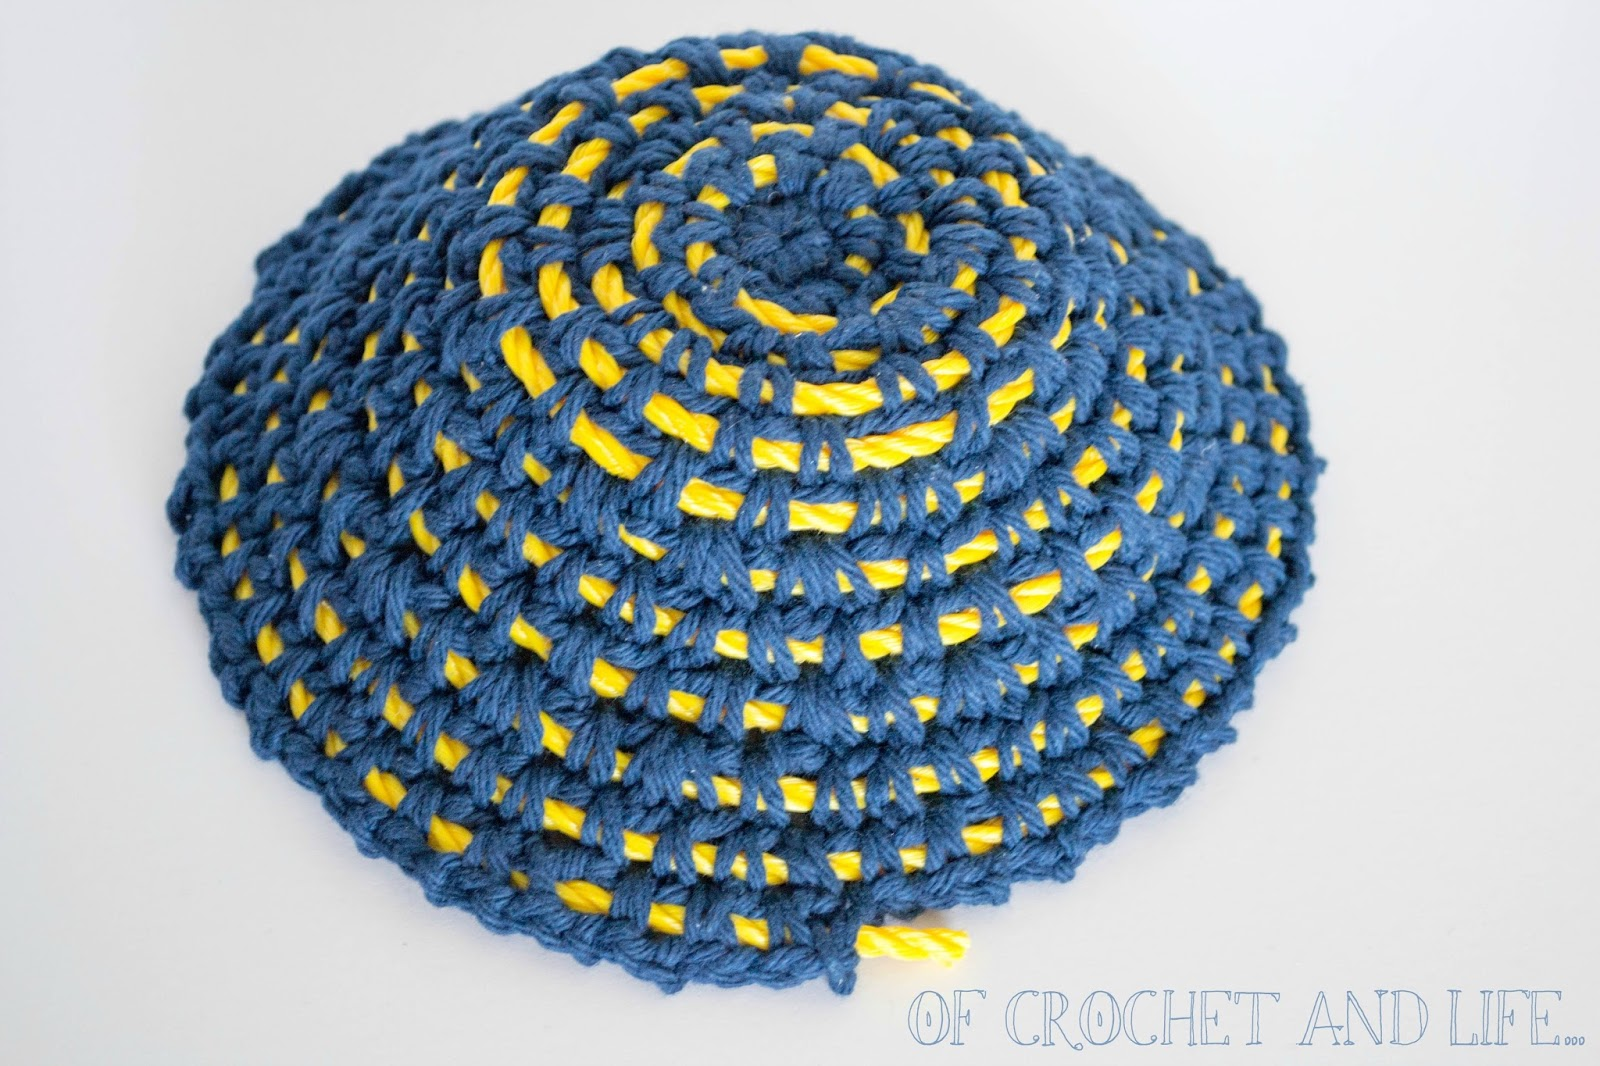 Of Crochet and Life...: Coiled Rope Crochet Bowl